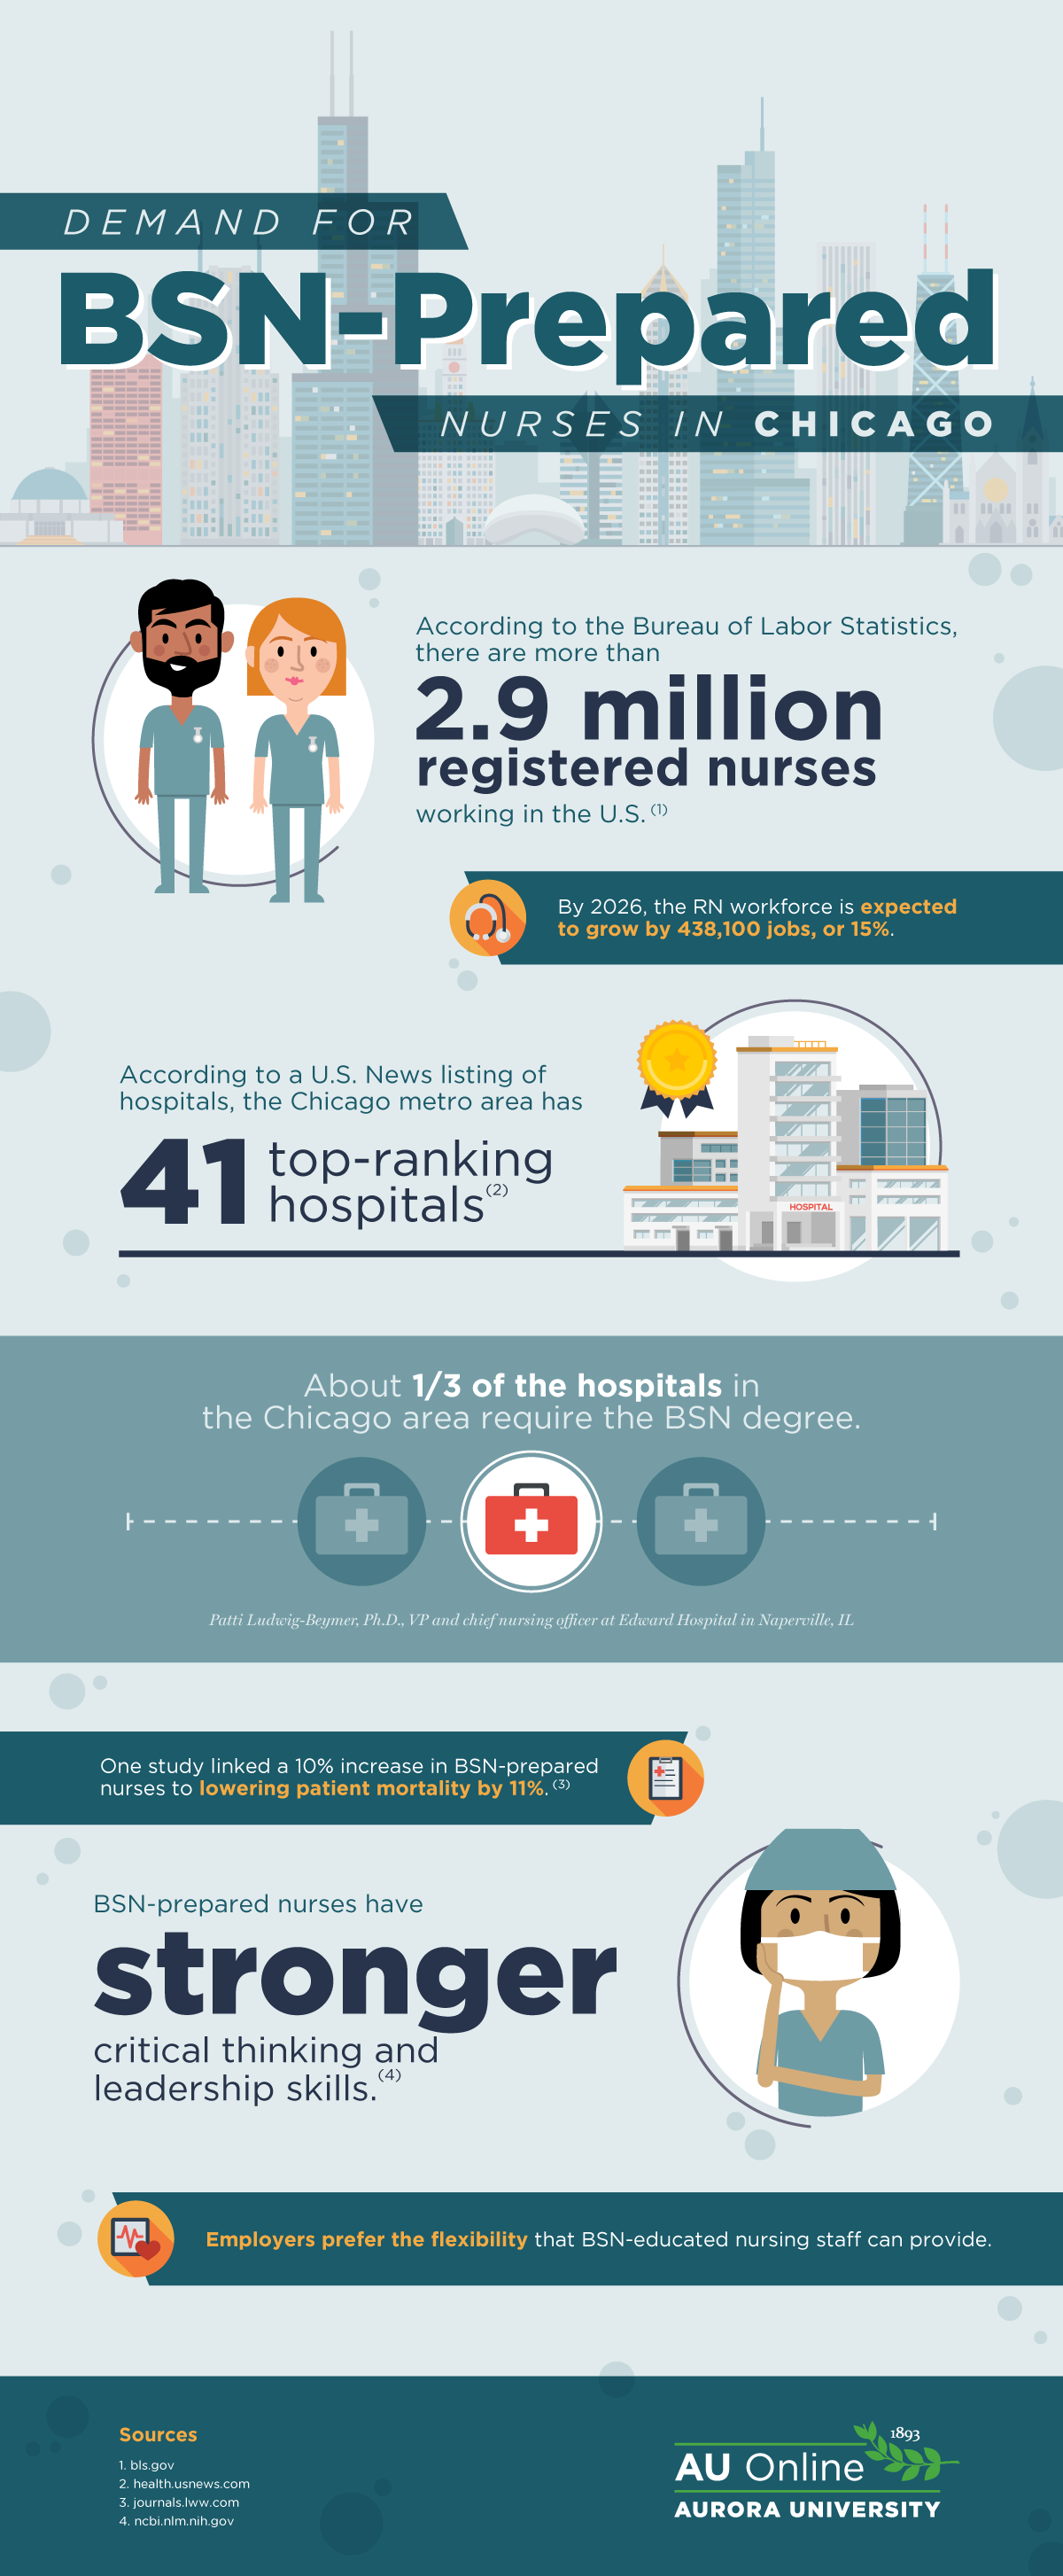 Demand for BSN Prepared Nurses in Chicago